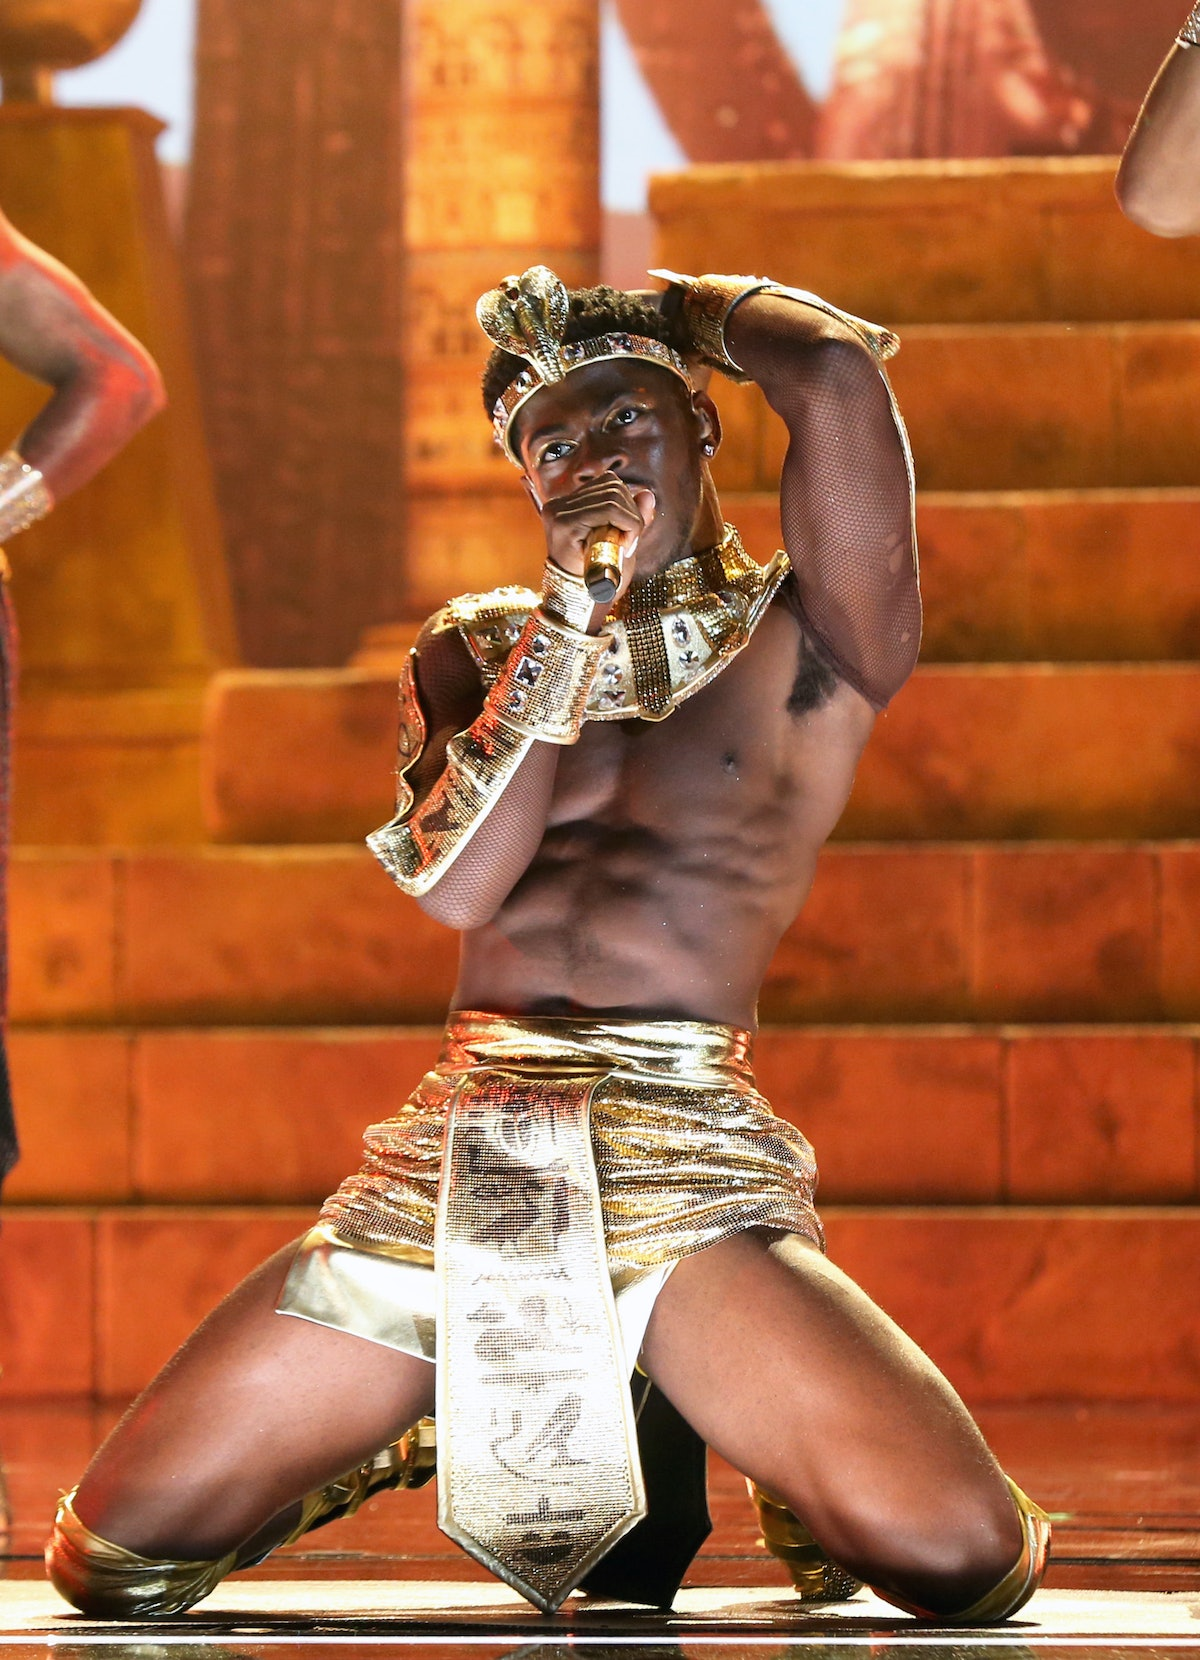 LOS ANGELES, CALIFORNIA - JUNE 27: Lil Nas X performs onstage at the BET Awards 2021 at Microsoft Theater on June 27, 2021 in Los Angeles, California. (Photo by Bennett Raglin/Getty Images for BET)